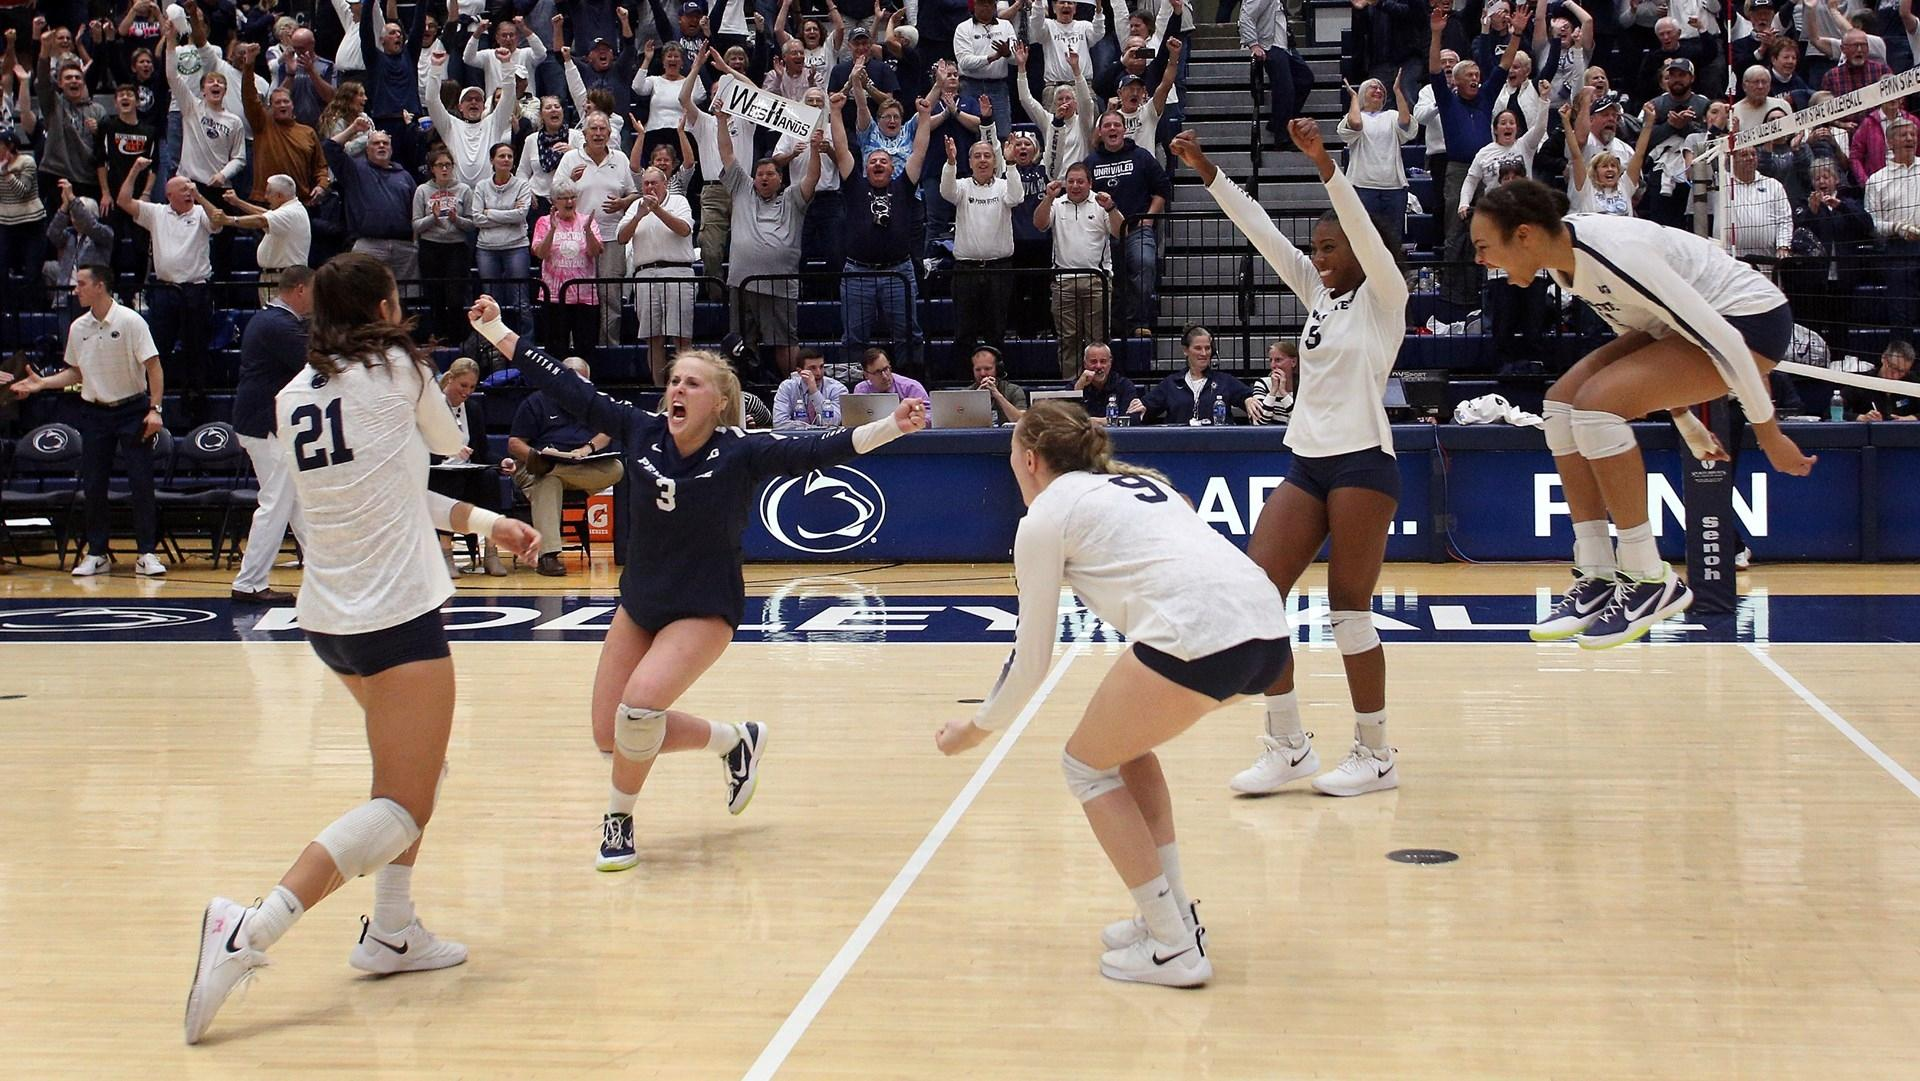 College volleyball rankings: Penn State rises with top-five